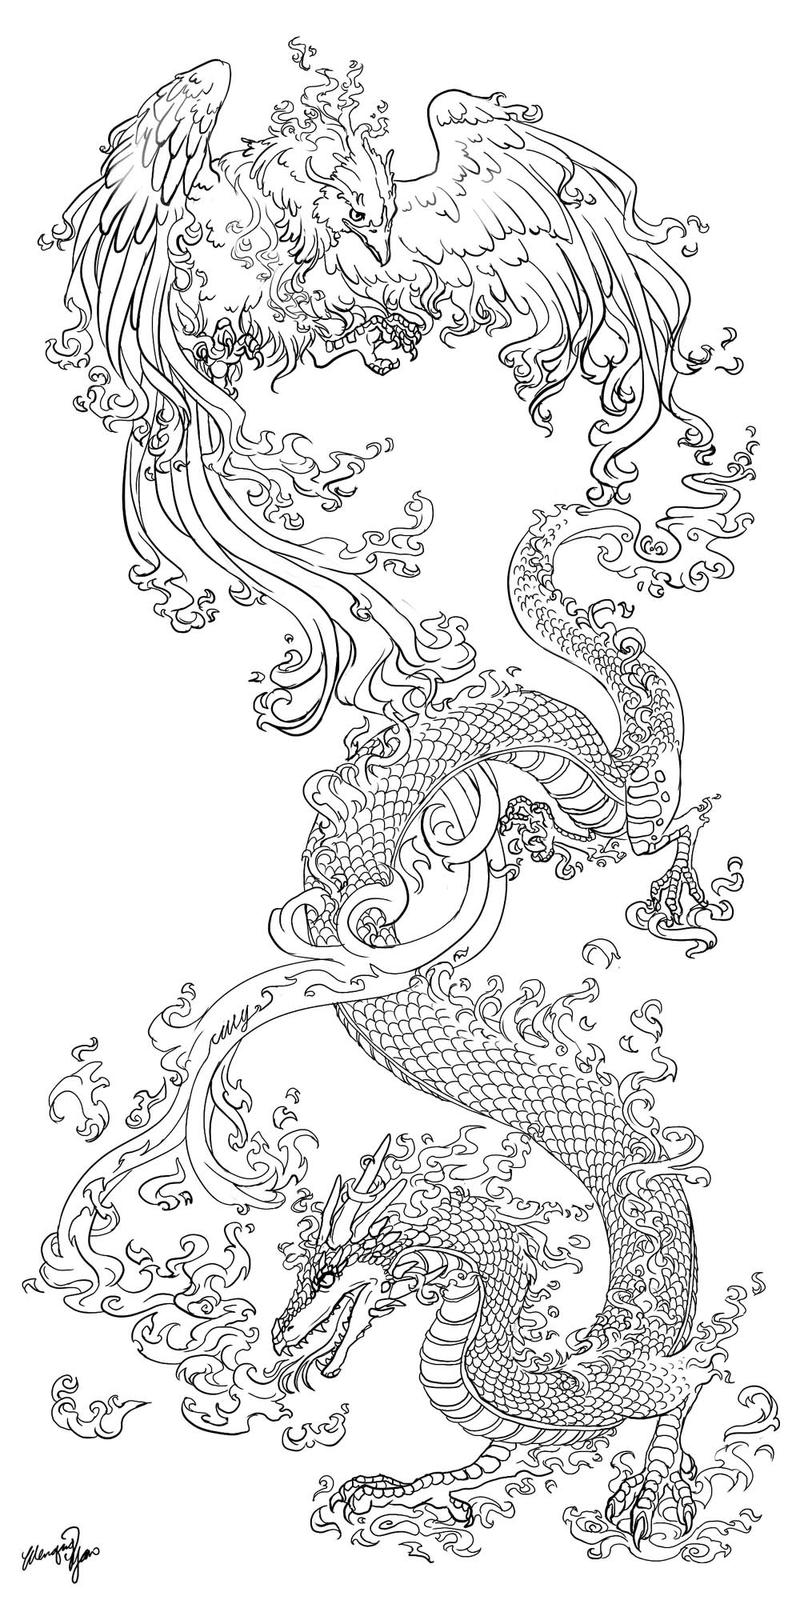 DragonPhoenix tattooCommission